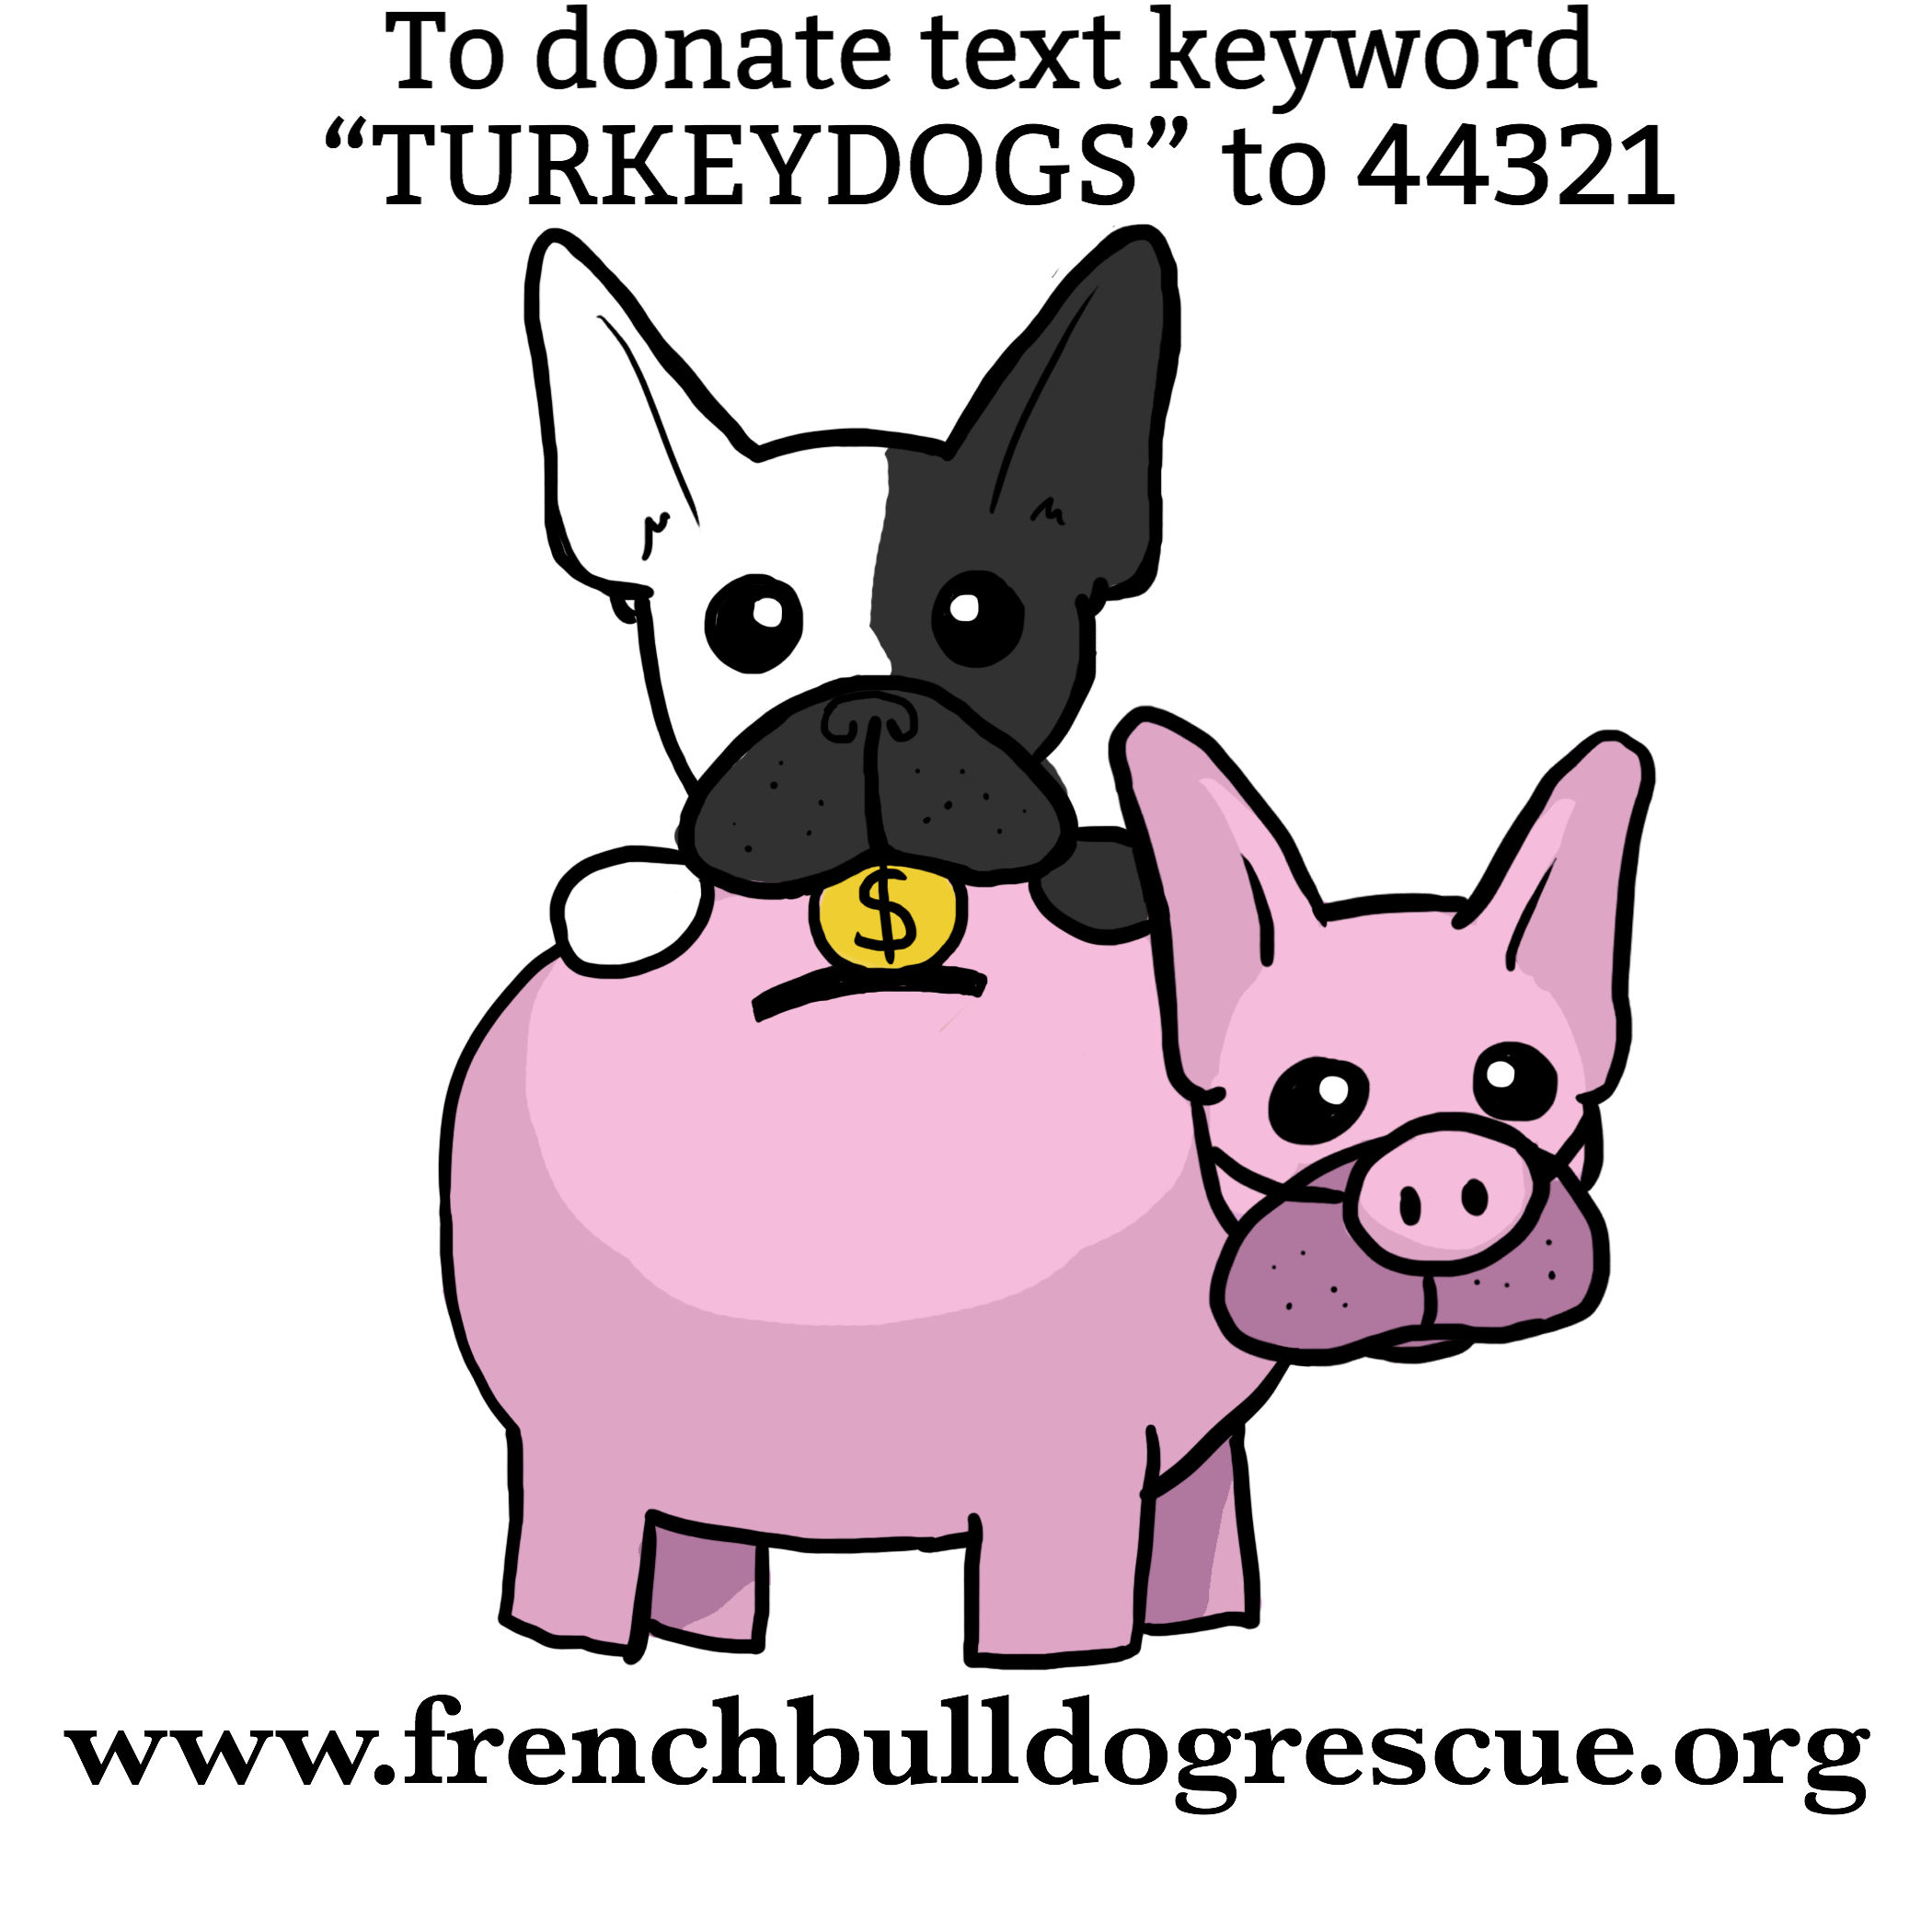 Donate Now | Help FBRN's Homeless Turkish Frenchies by